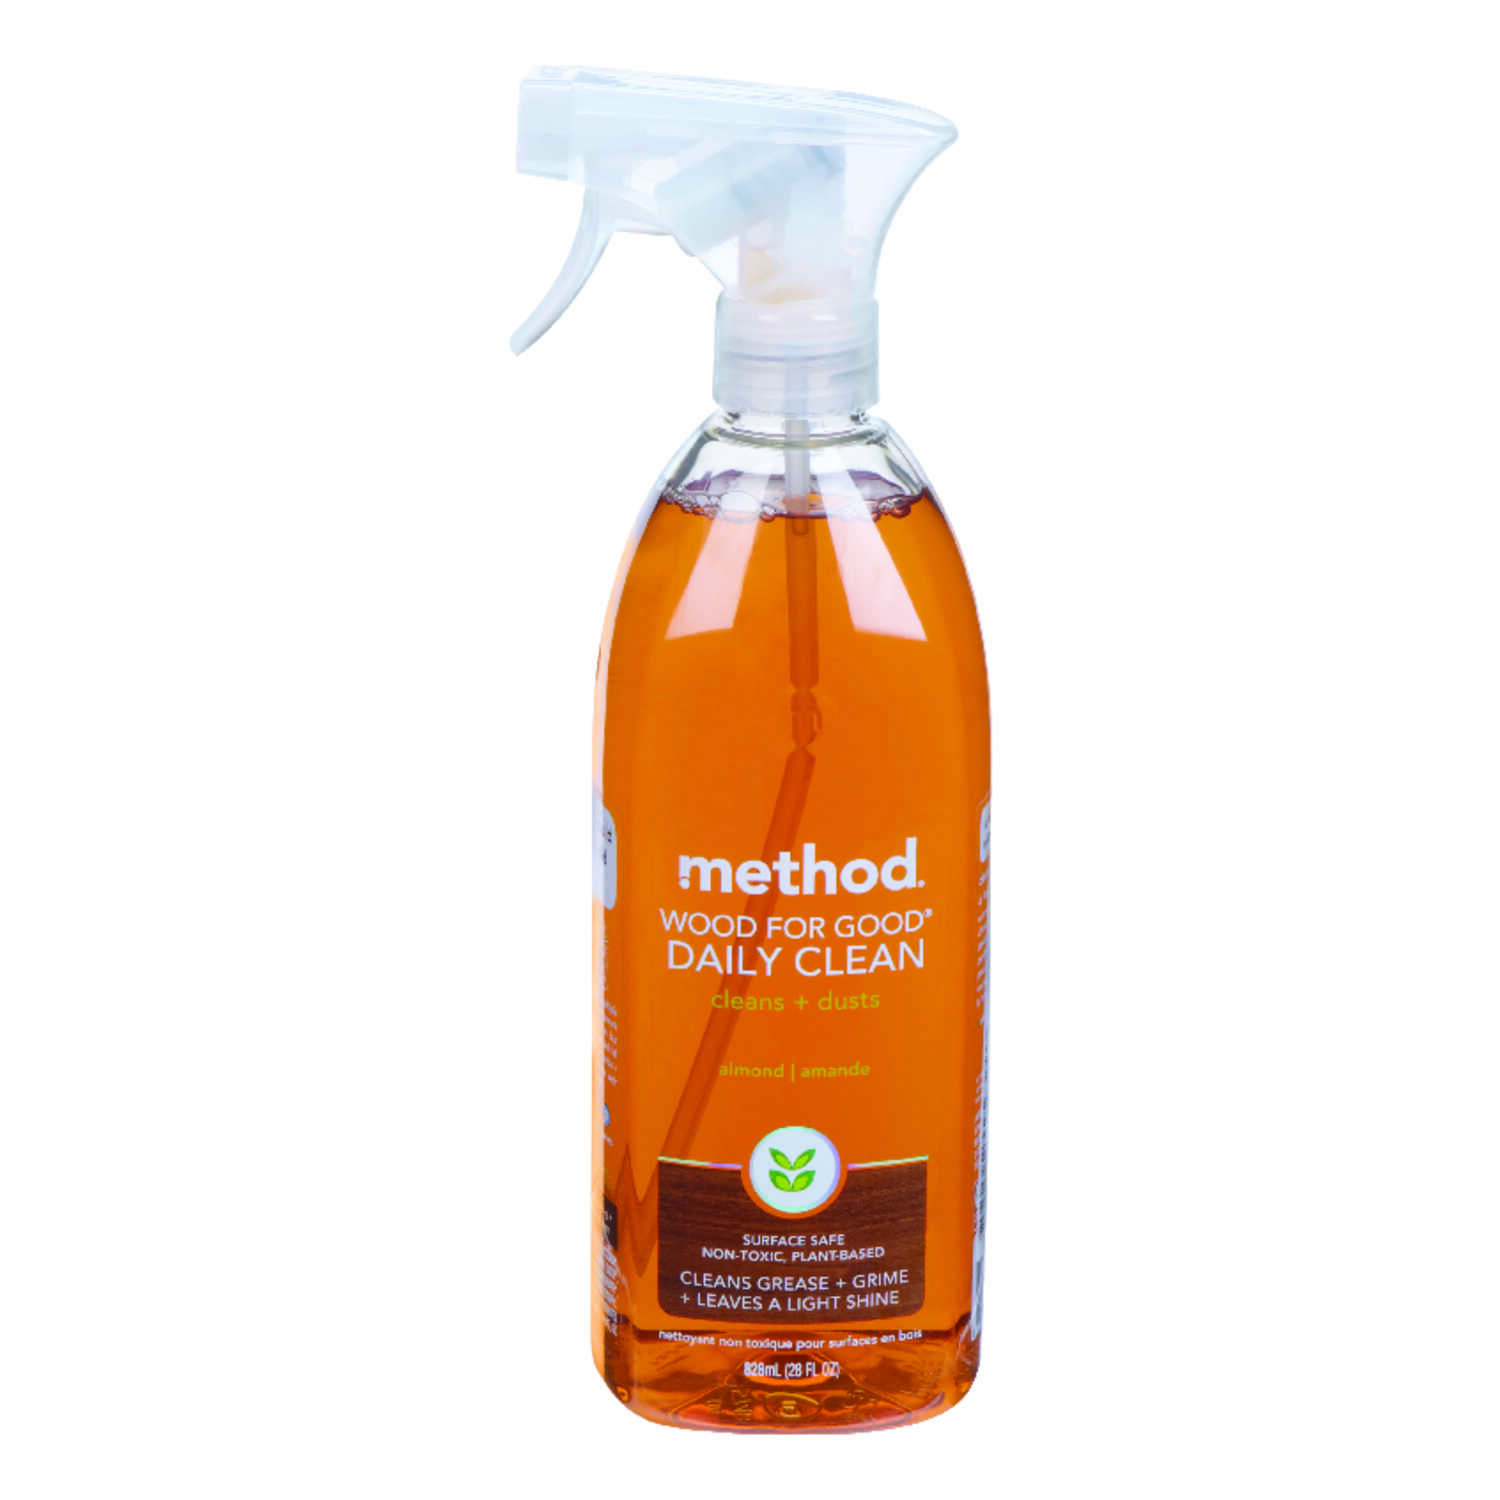 Method  Wood for Good Daily Wood Cleaner    28 oz. trigger spray  Almond